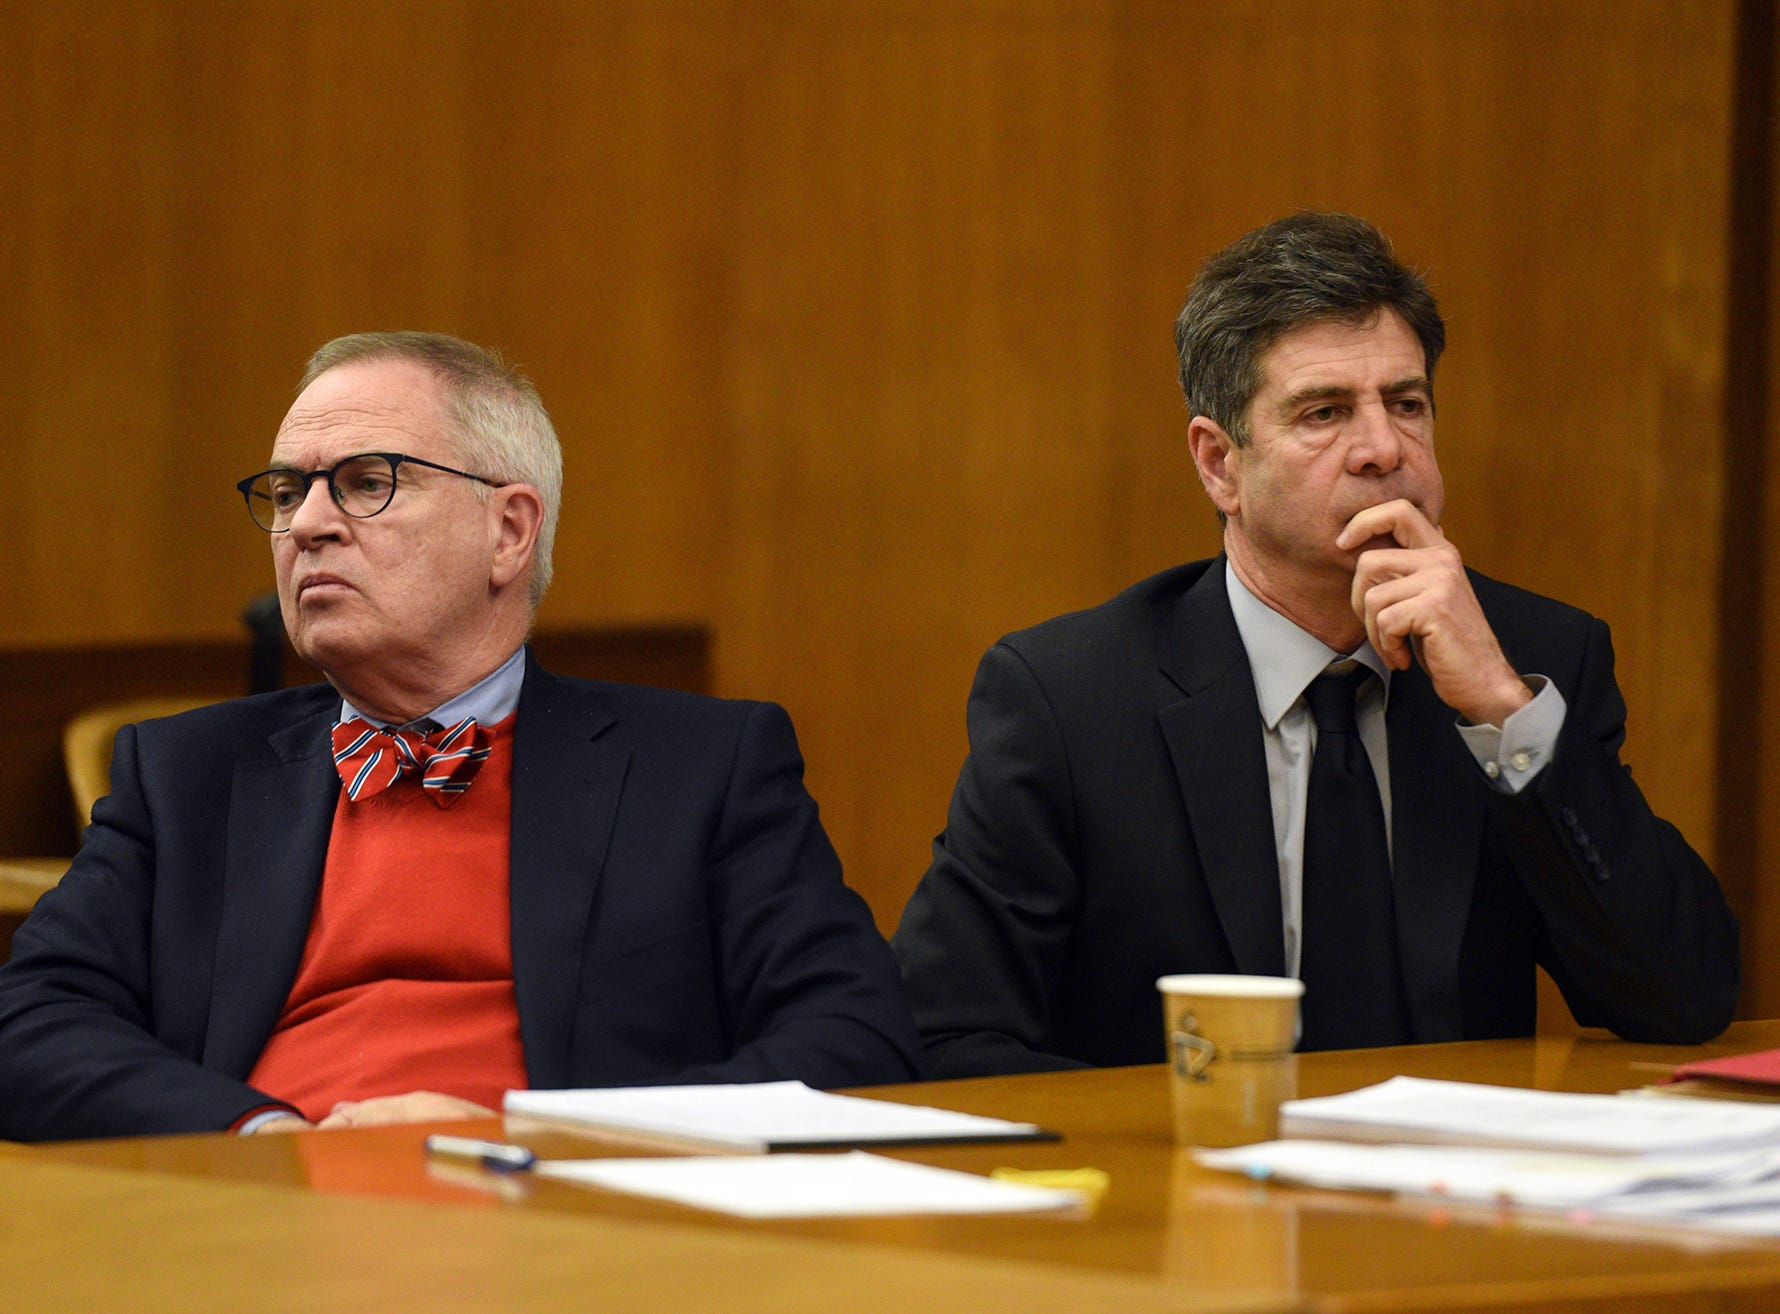 Jared Clackner, on right, with his attorney Brian Neary, was sentenced to 364 days in the Bergen County Jail and five years probation, to be served reversed, for his conviction on assault charges. Clackner, of Denville, stood trial in October for killing his friend Bill Henning on the side of Route 80 in March 2015. A jury found Clackner not guilty of manslaughter, but convicted him on assault charges. Clackner was sentenced before Judge Susan Steele in Bergen County Superior Court on Monday, January 7, 2019.